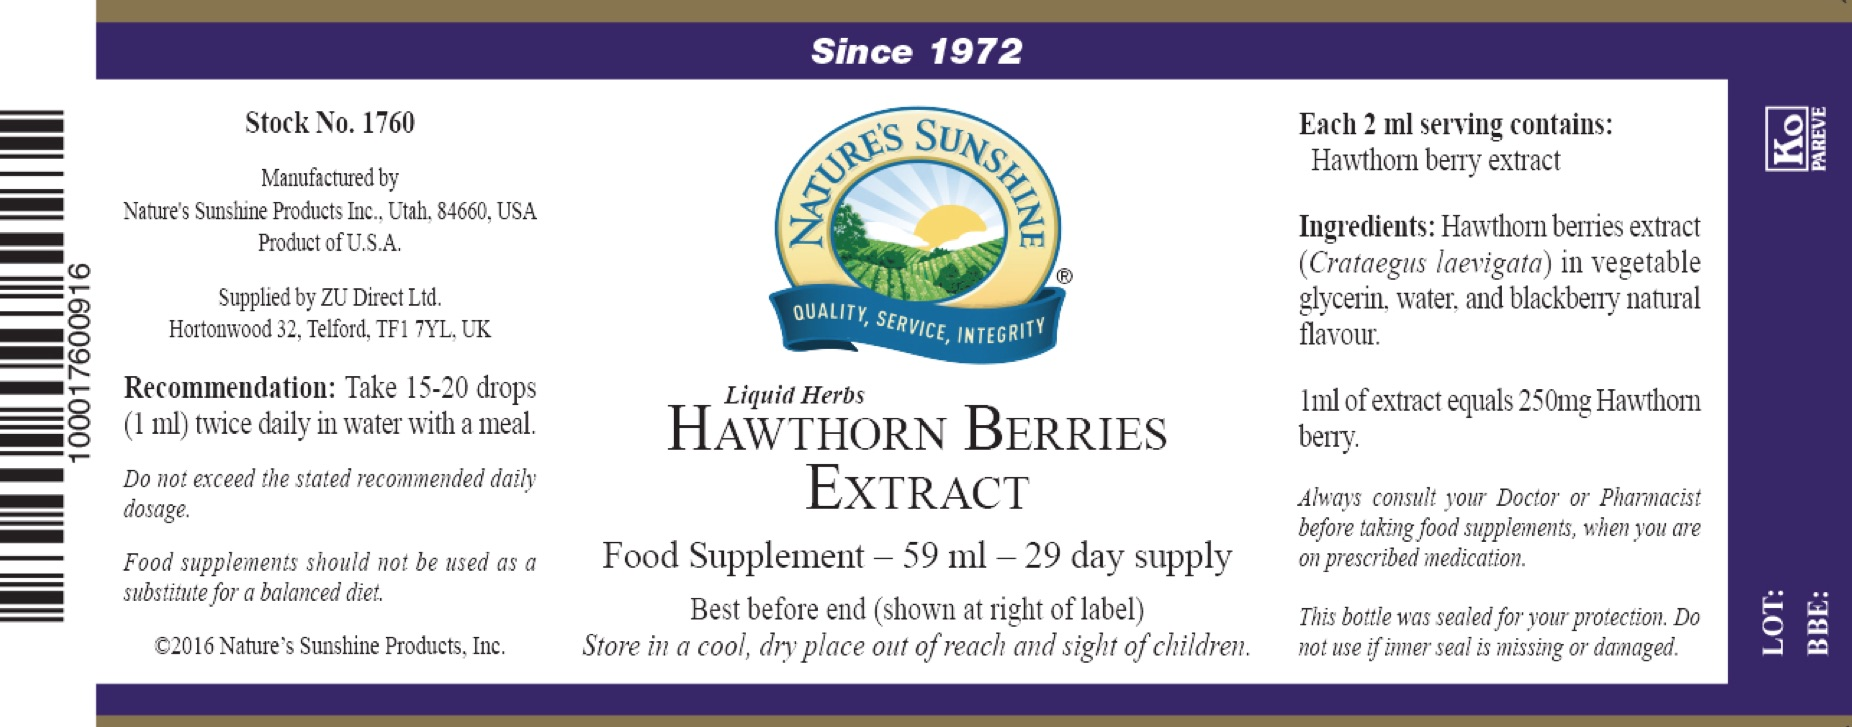 Nature's Sunshine - Hawthorn Berries Extract - Label